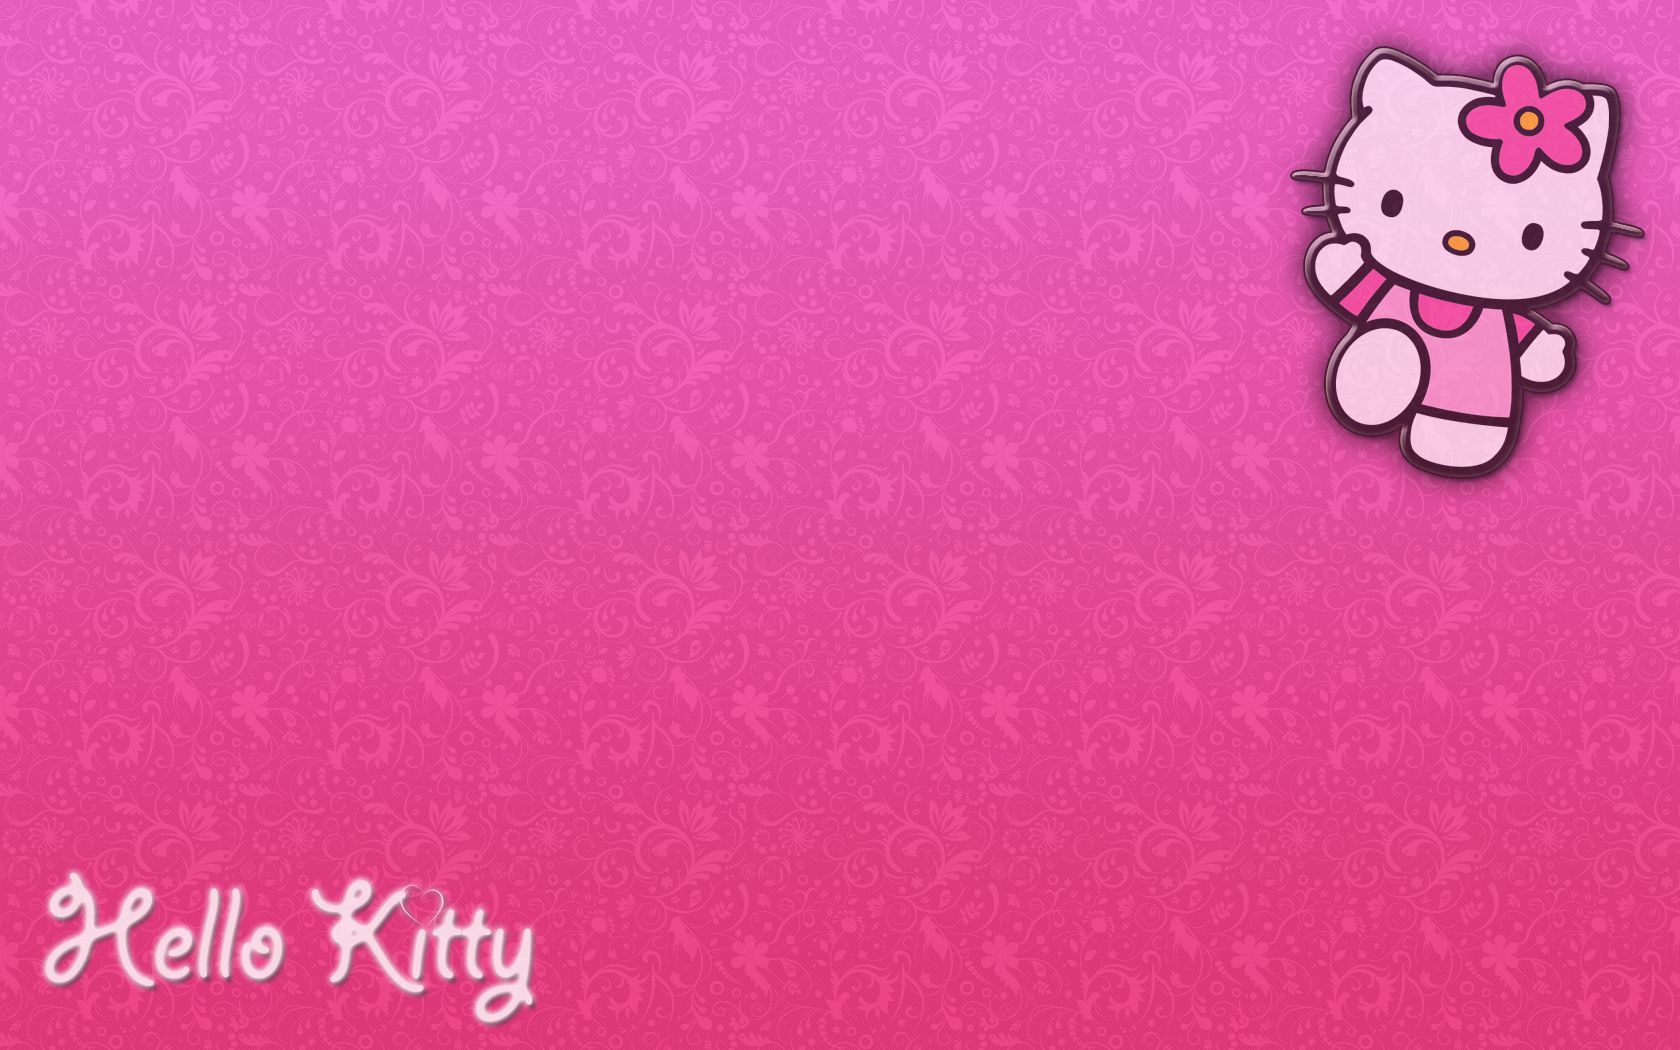 1680 x 1050 png 594kB, File Name : Hello Kitty Cute Backgrounds ...